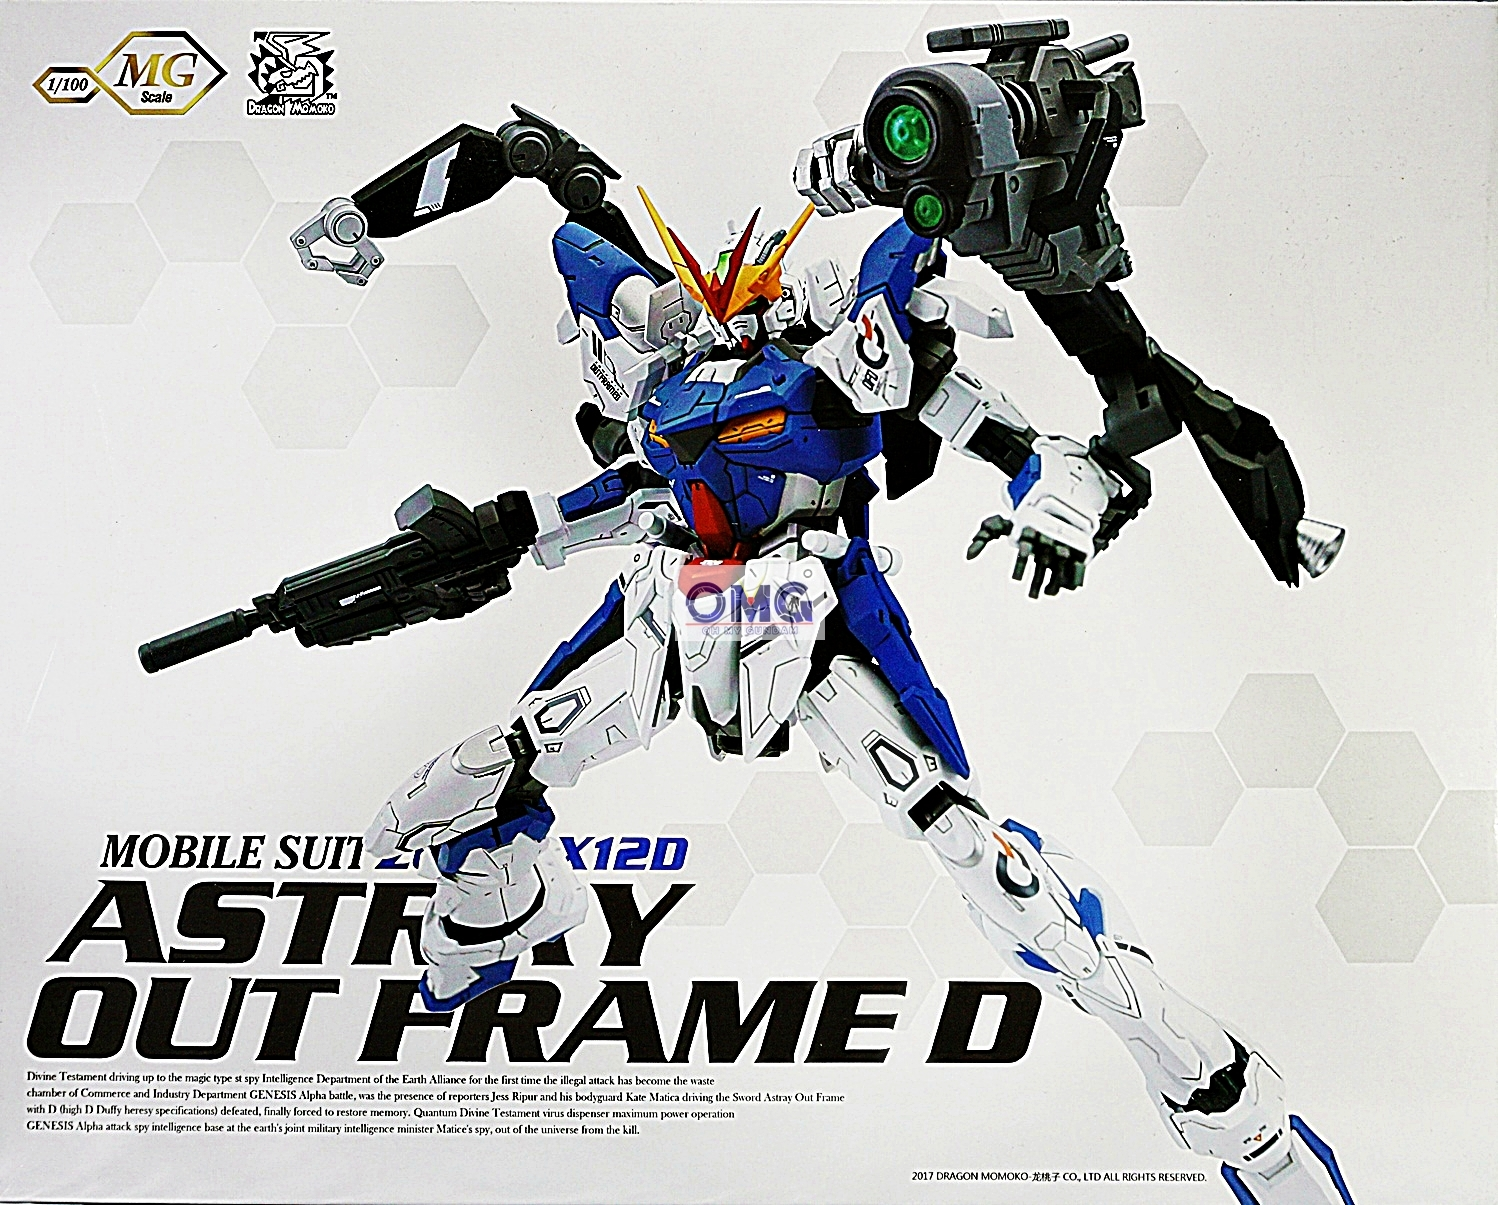 MG Astray Out Frame D 1.0.JPG